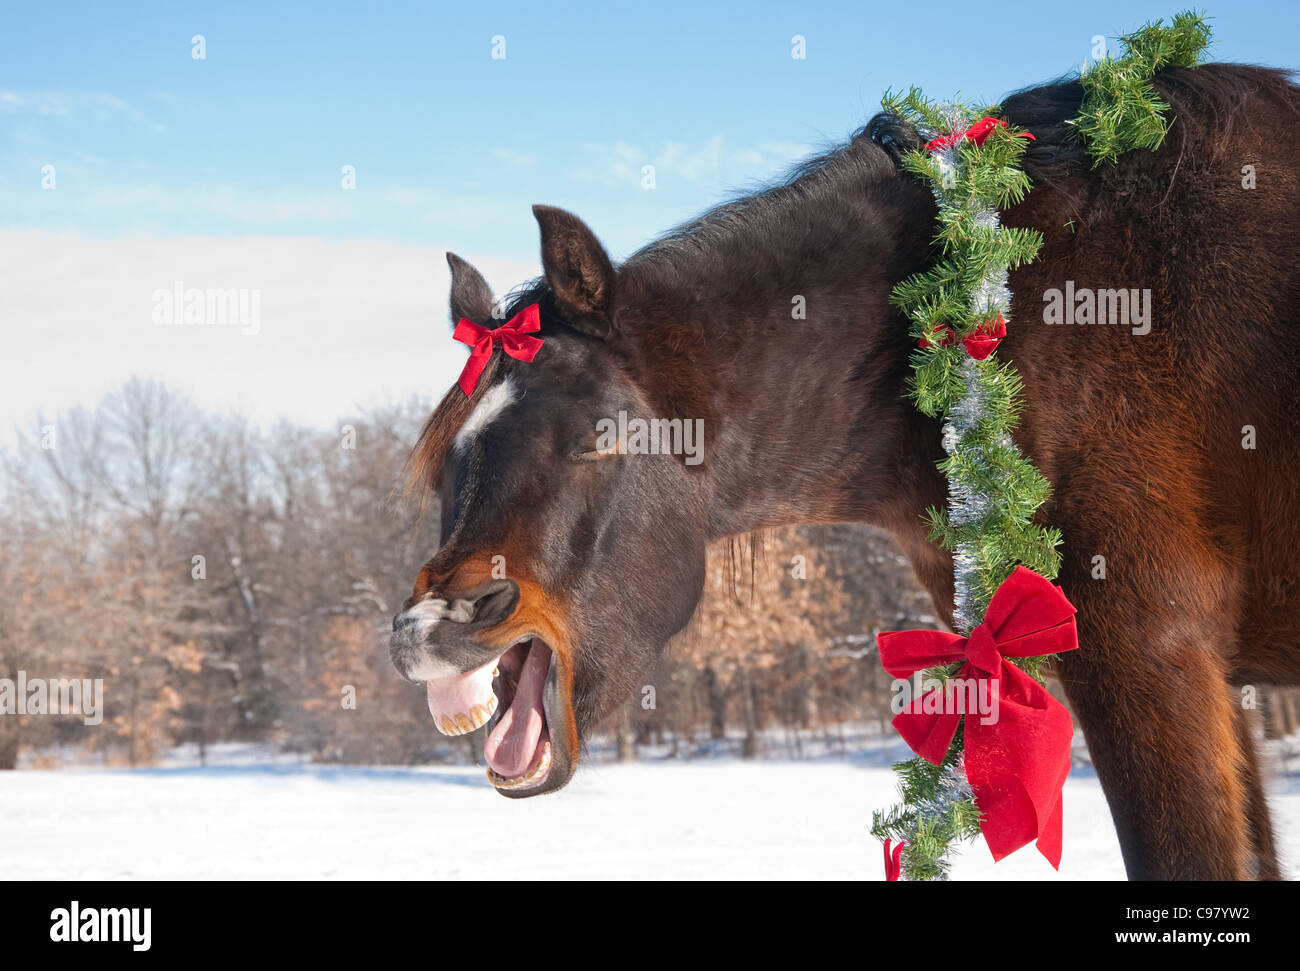 Comical image of a dark bay horse yawning while wearing a bright Christmas wreath and a bow with winter background - Stock Image